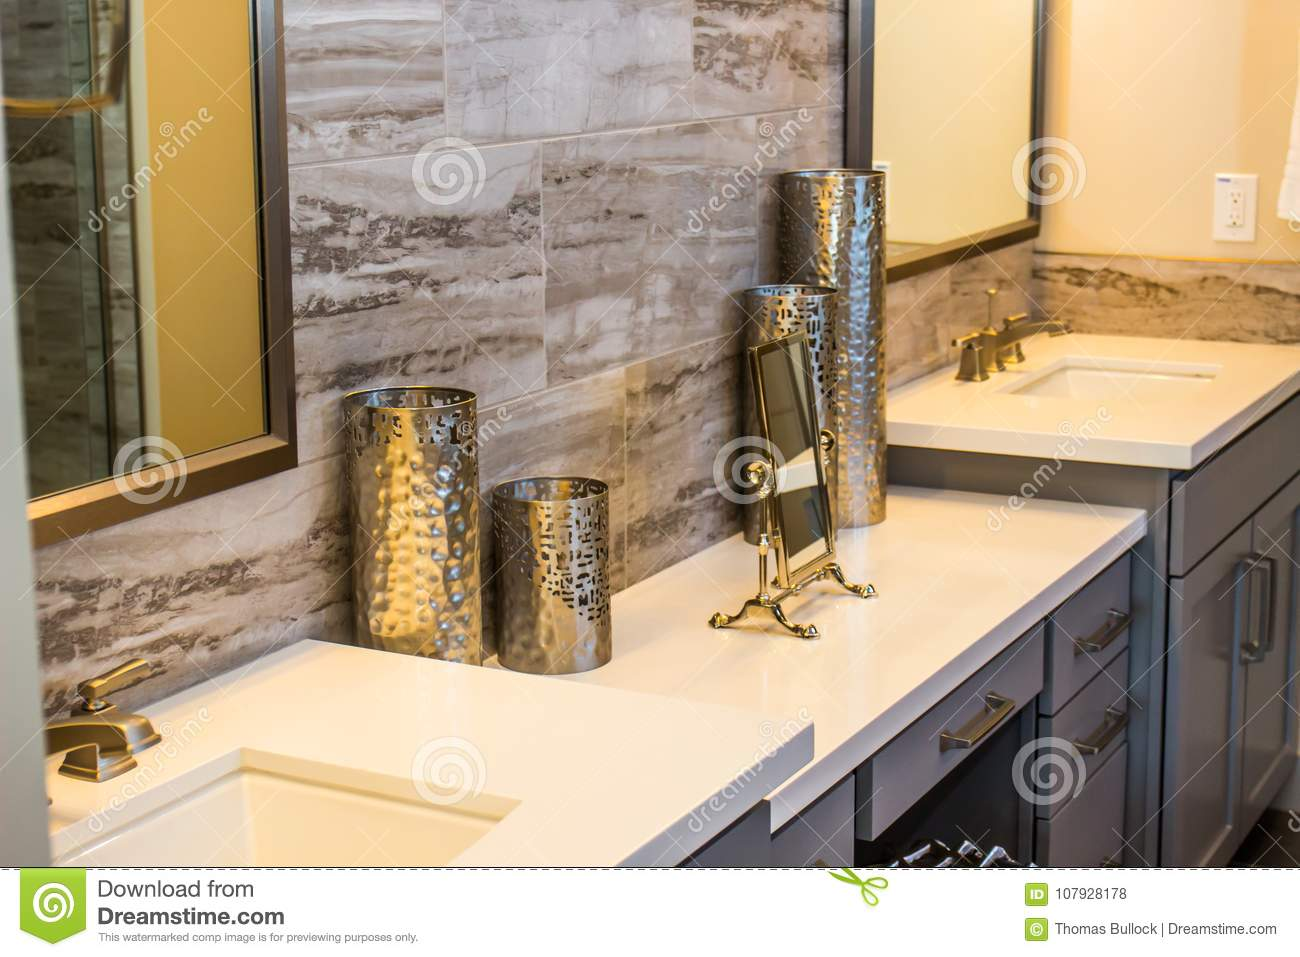 Patterned Knick Knacks On Modern Bathroom Counter